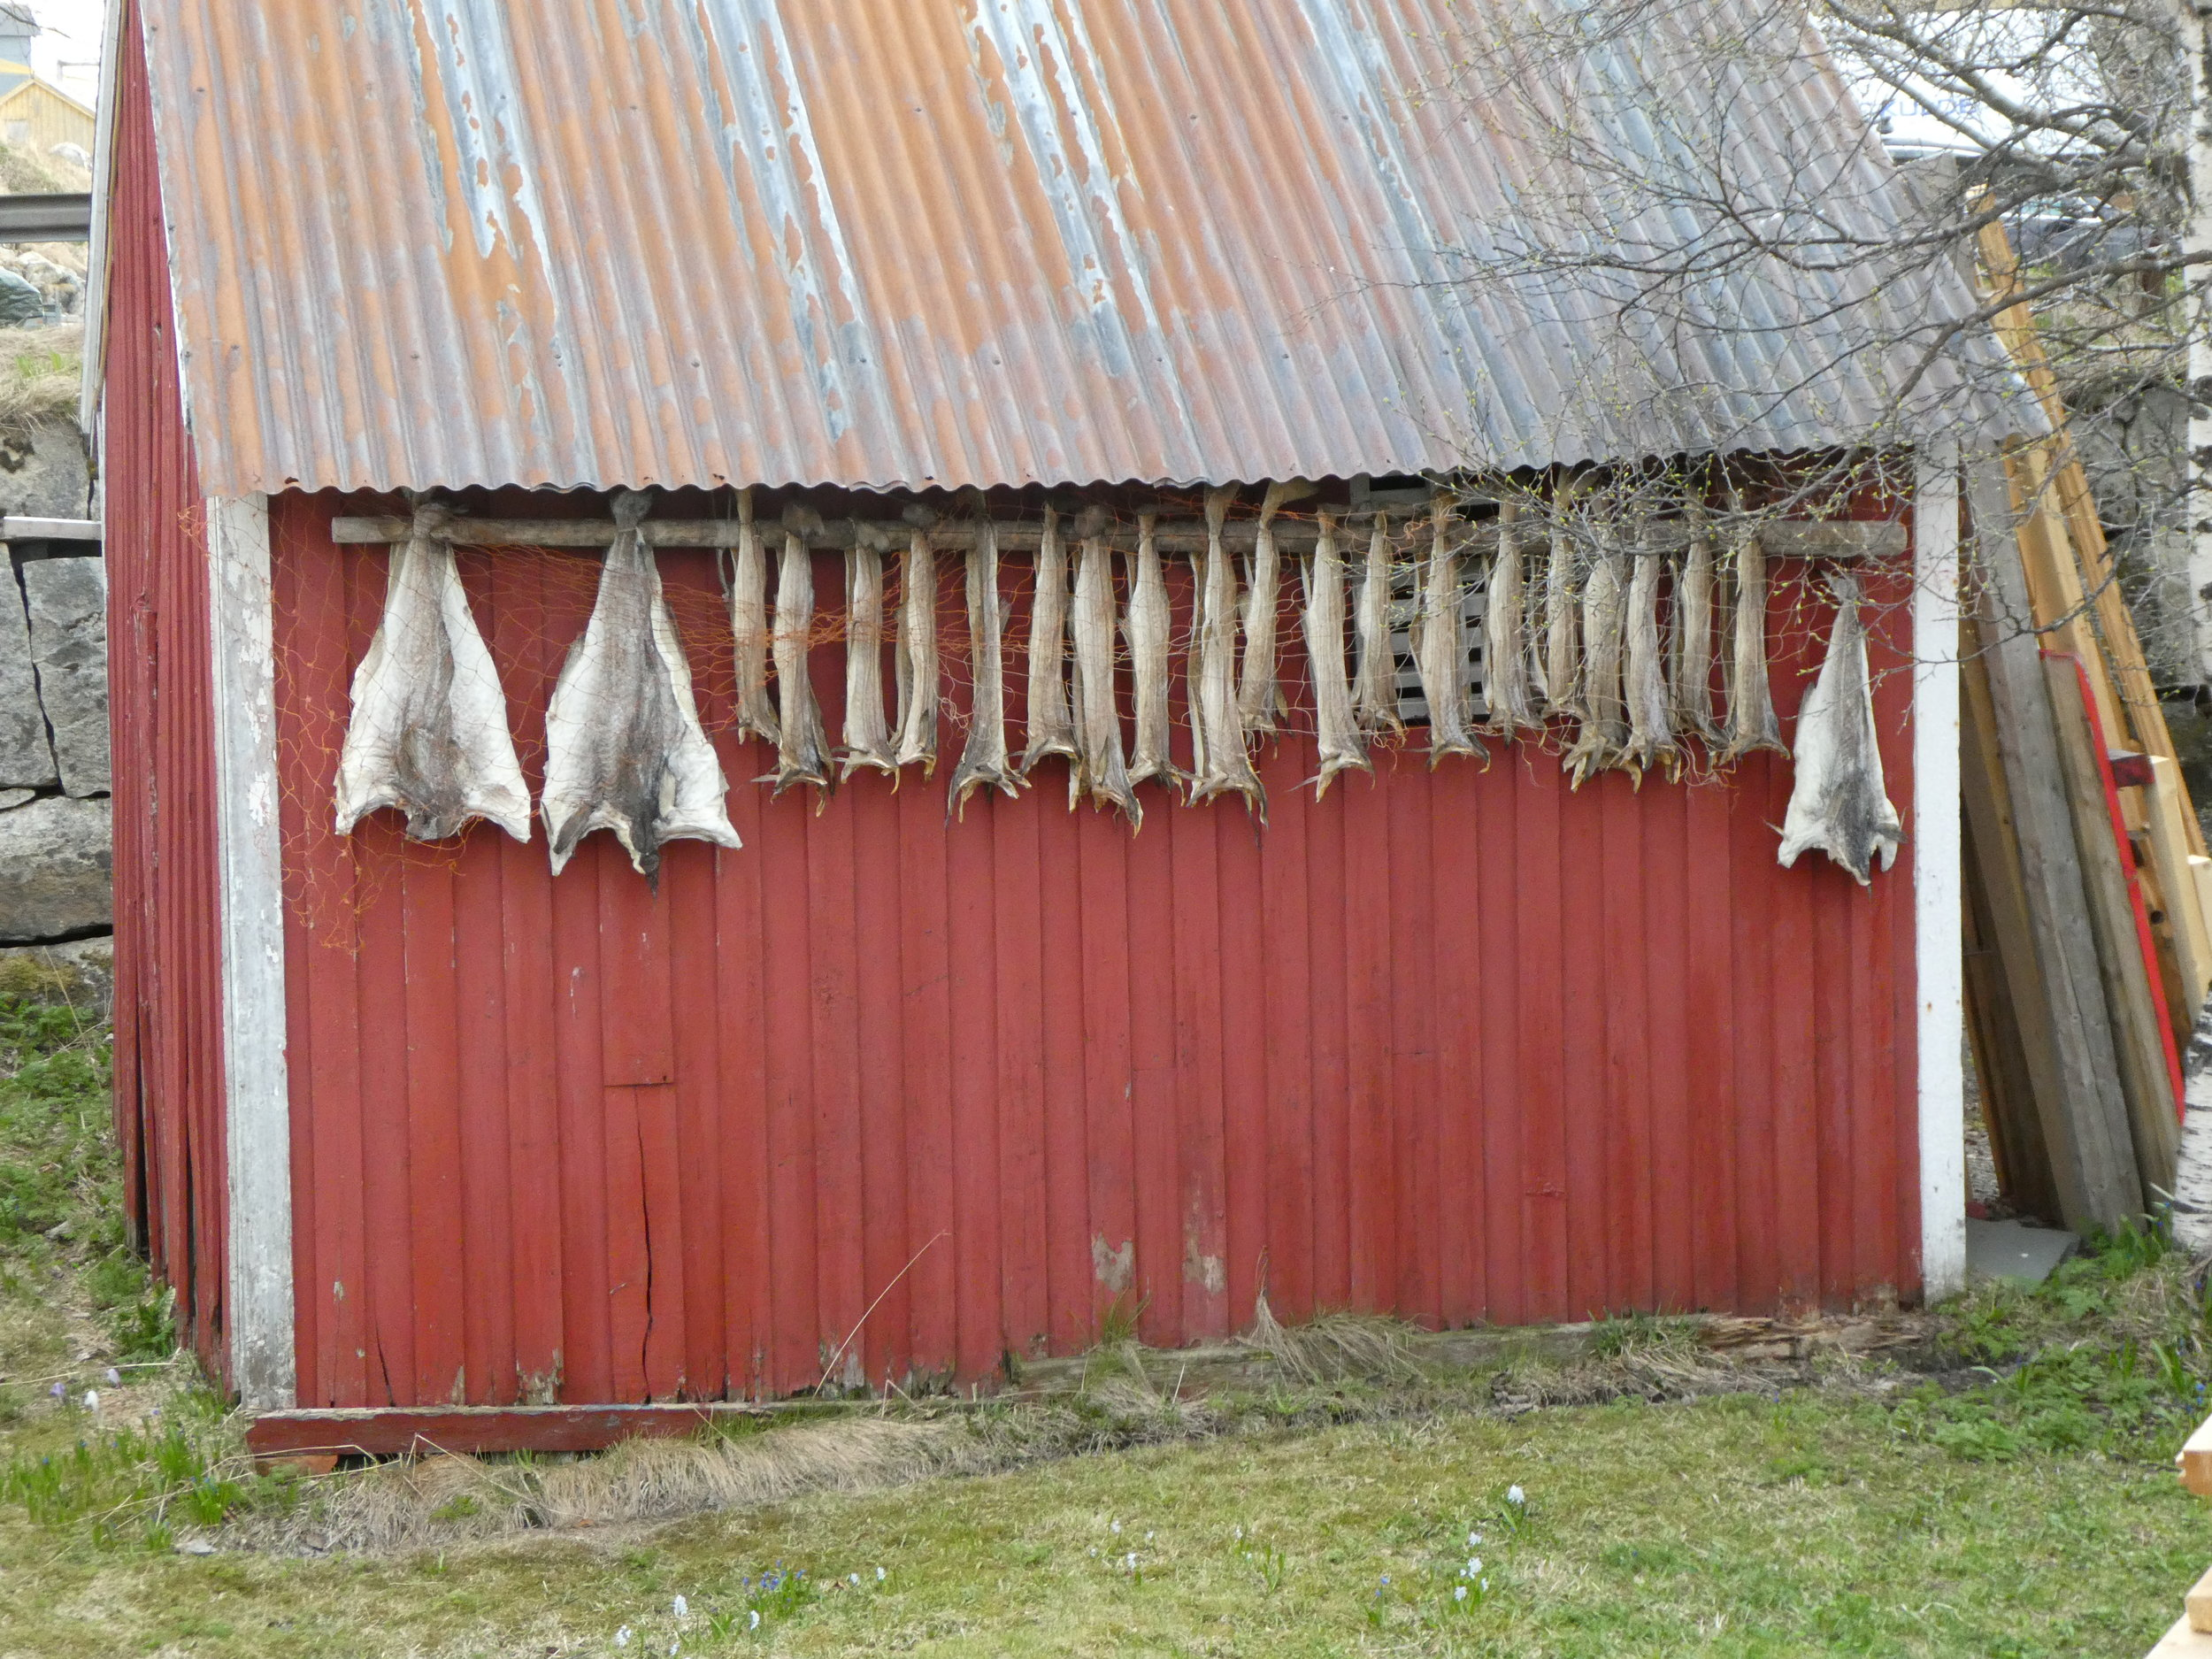 Supposedly a source of national pride, stockfish (air-dried cod) is ubiquitous throughout this part of Norway.